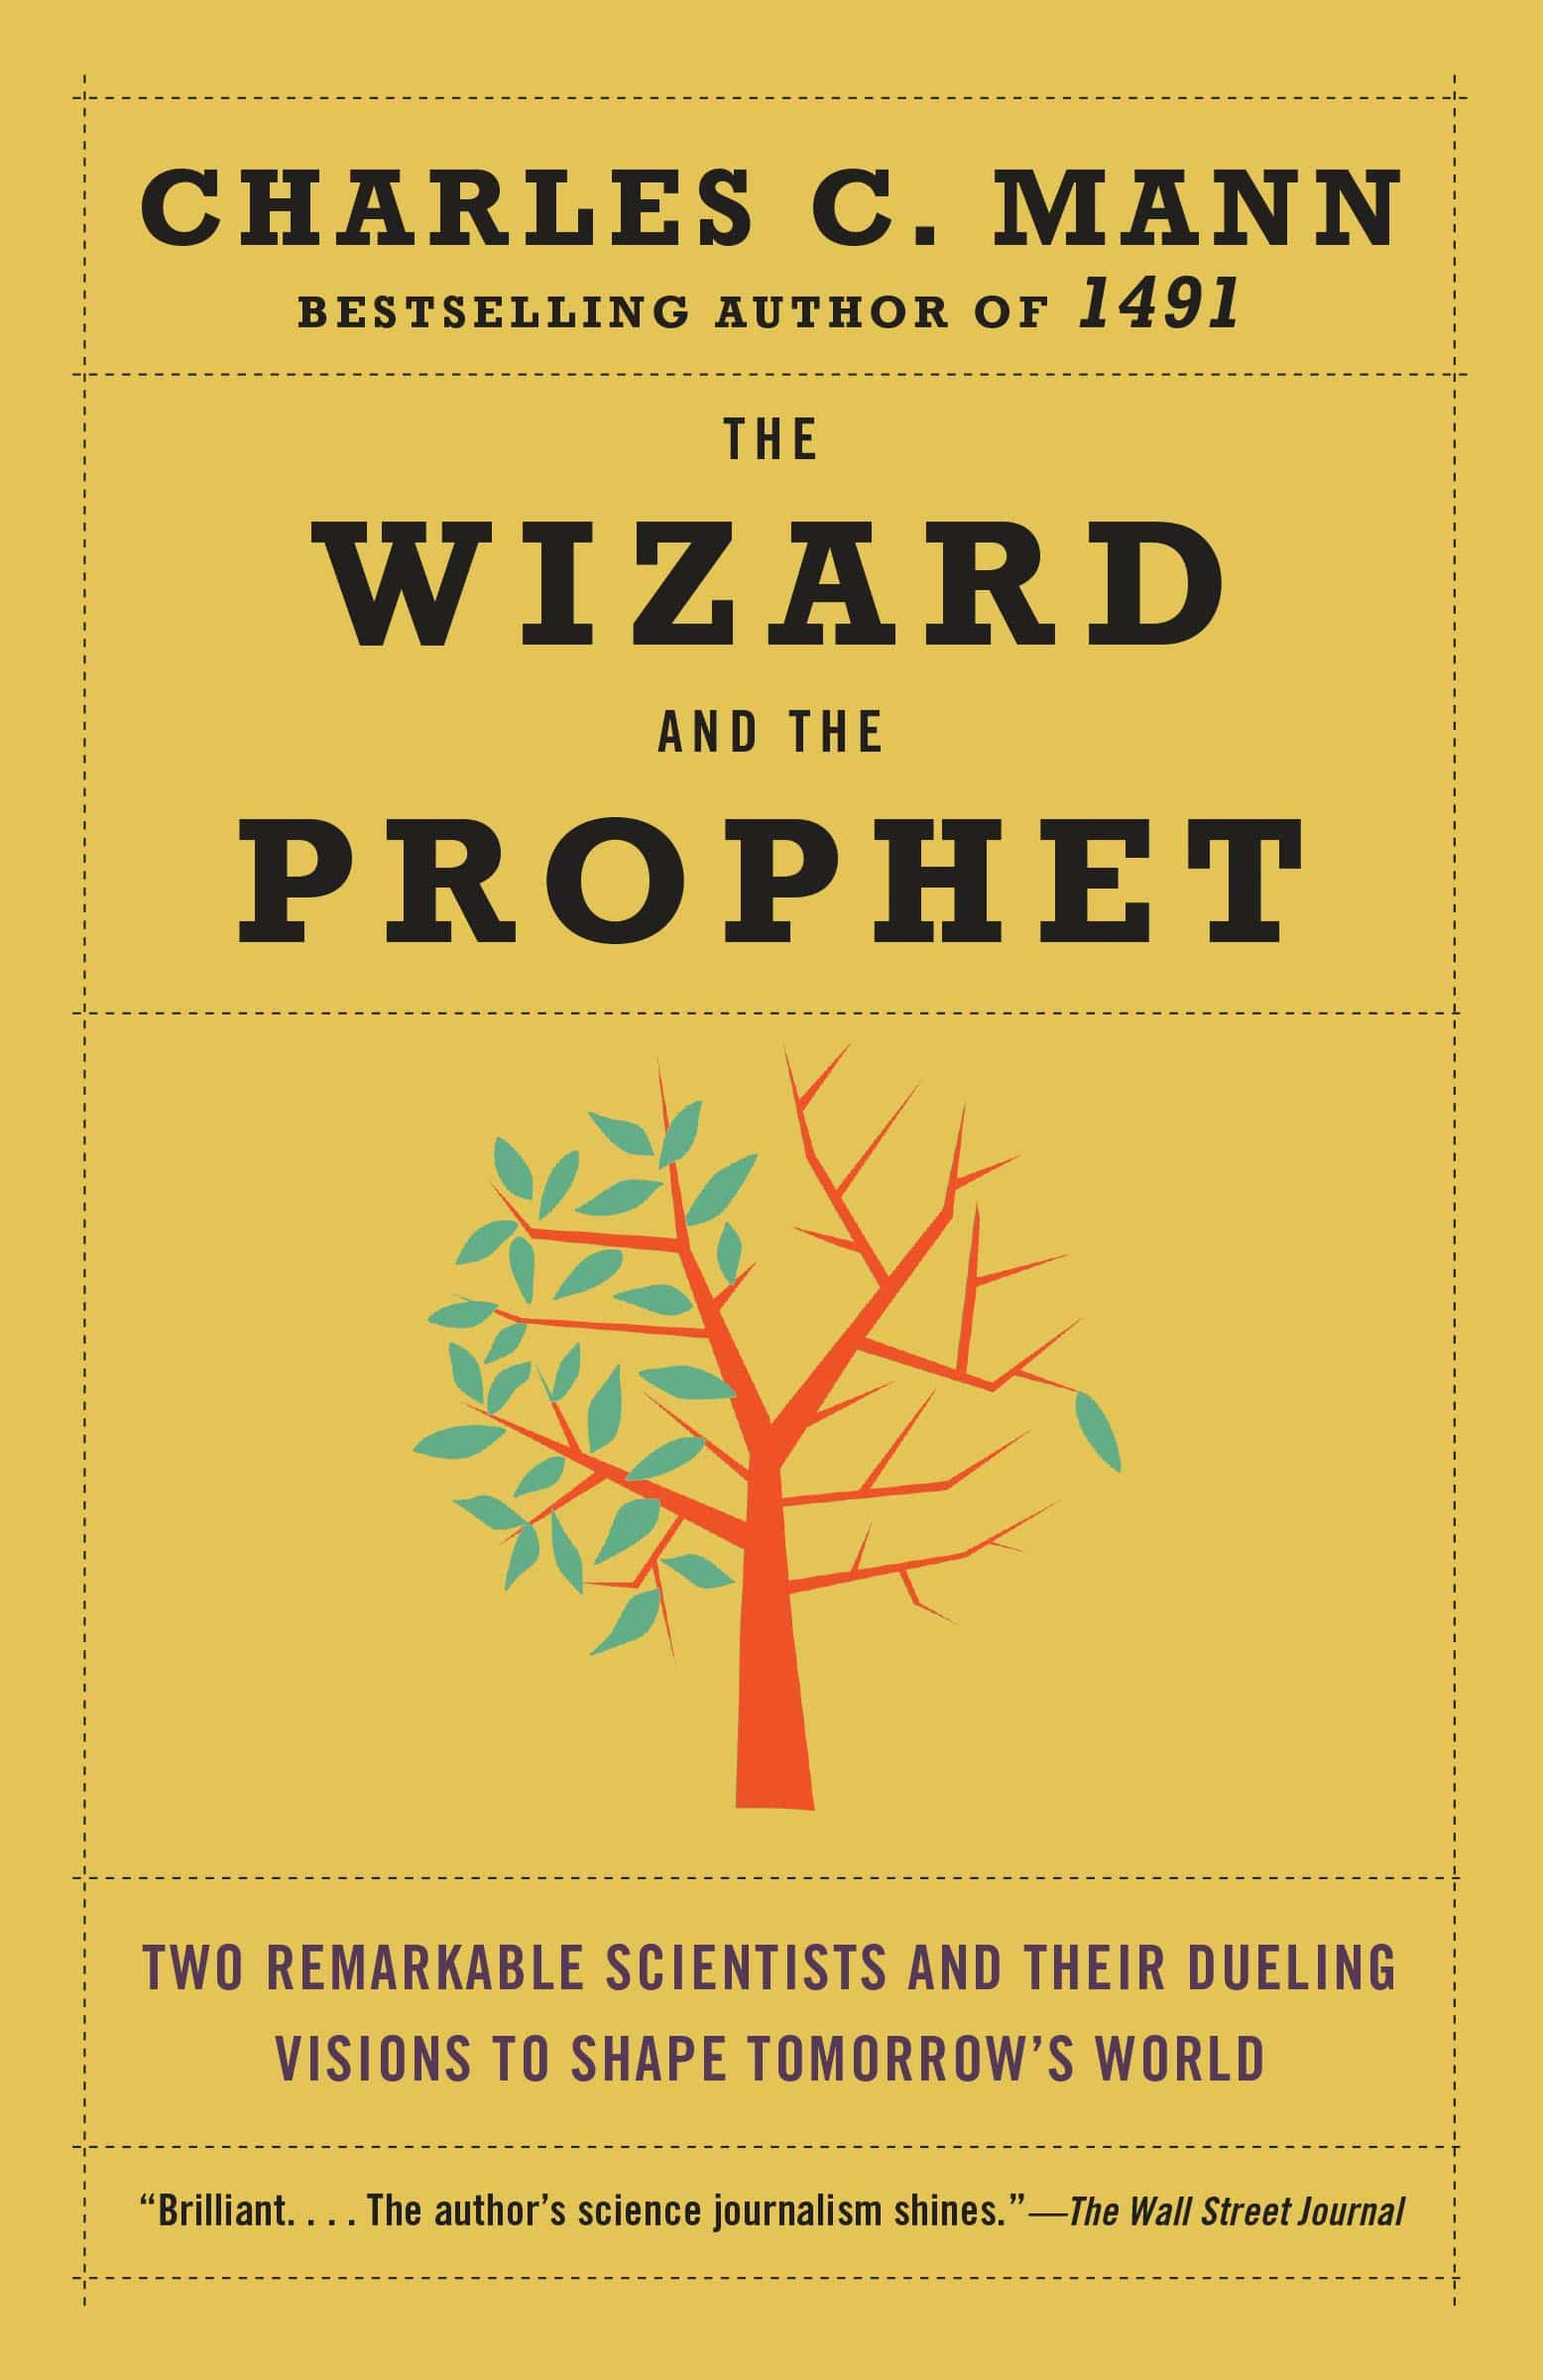 The cover of The Wizard and the Prophet